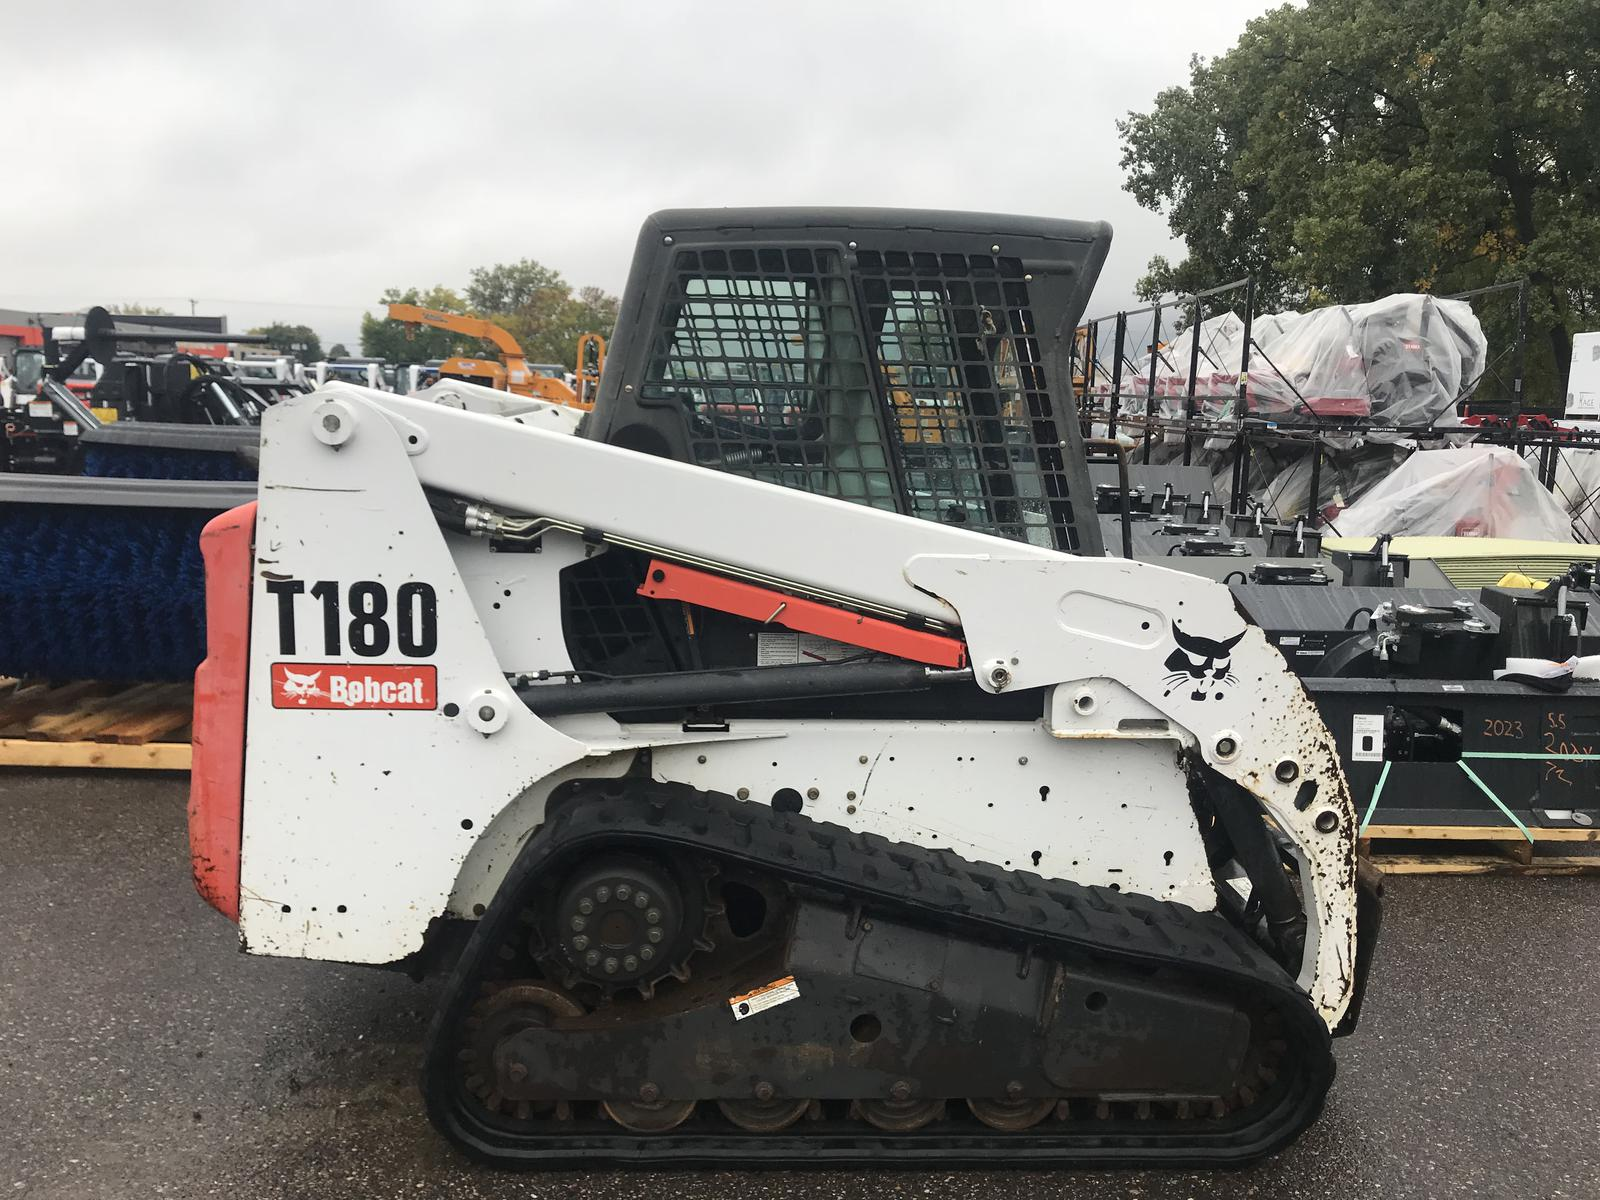 T180 Bobcat Wiring Diagram Diagrams Data Base 643 Schematic Fuel Www Topsimages Com Rh On 642 For Compact Track Loader Sale In Burnsville